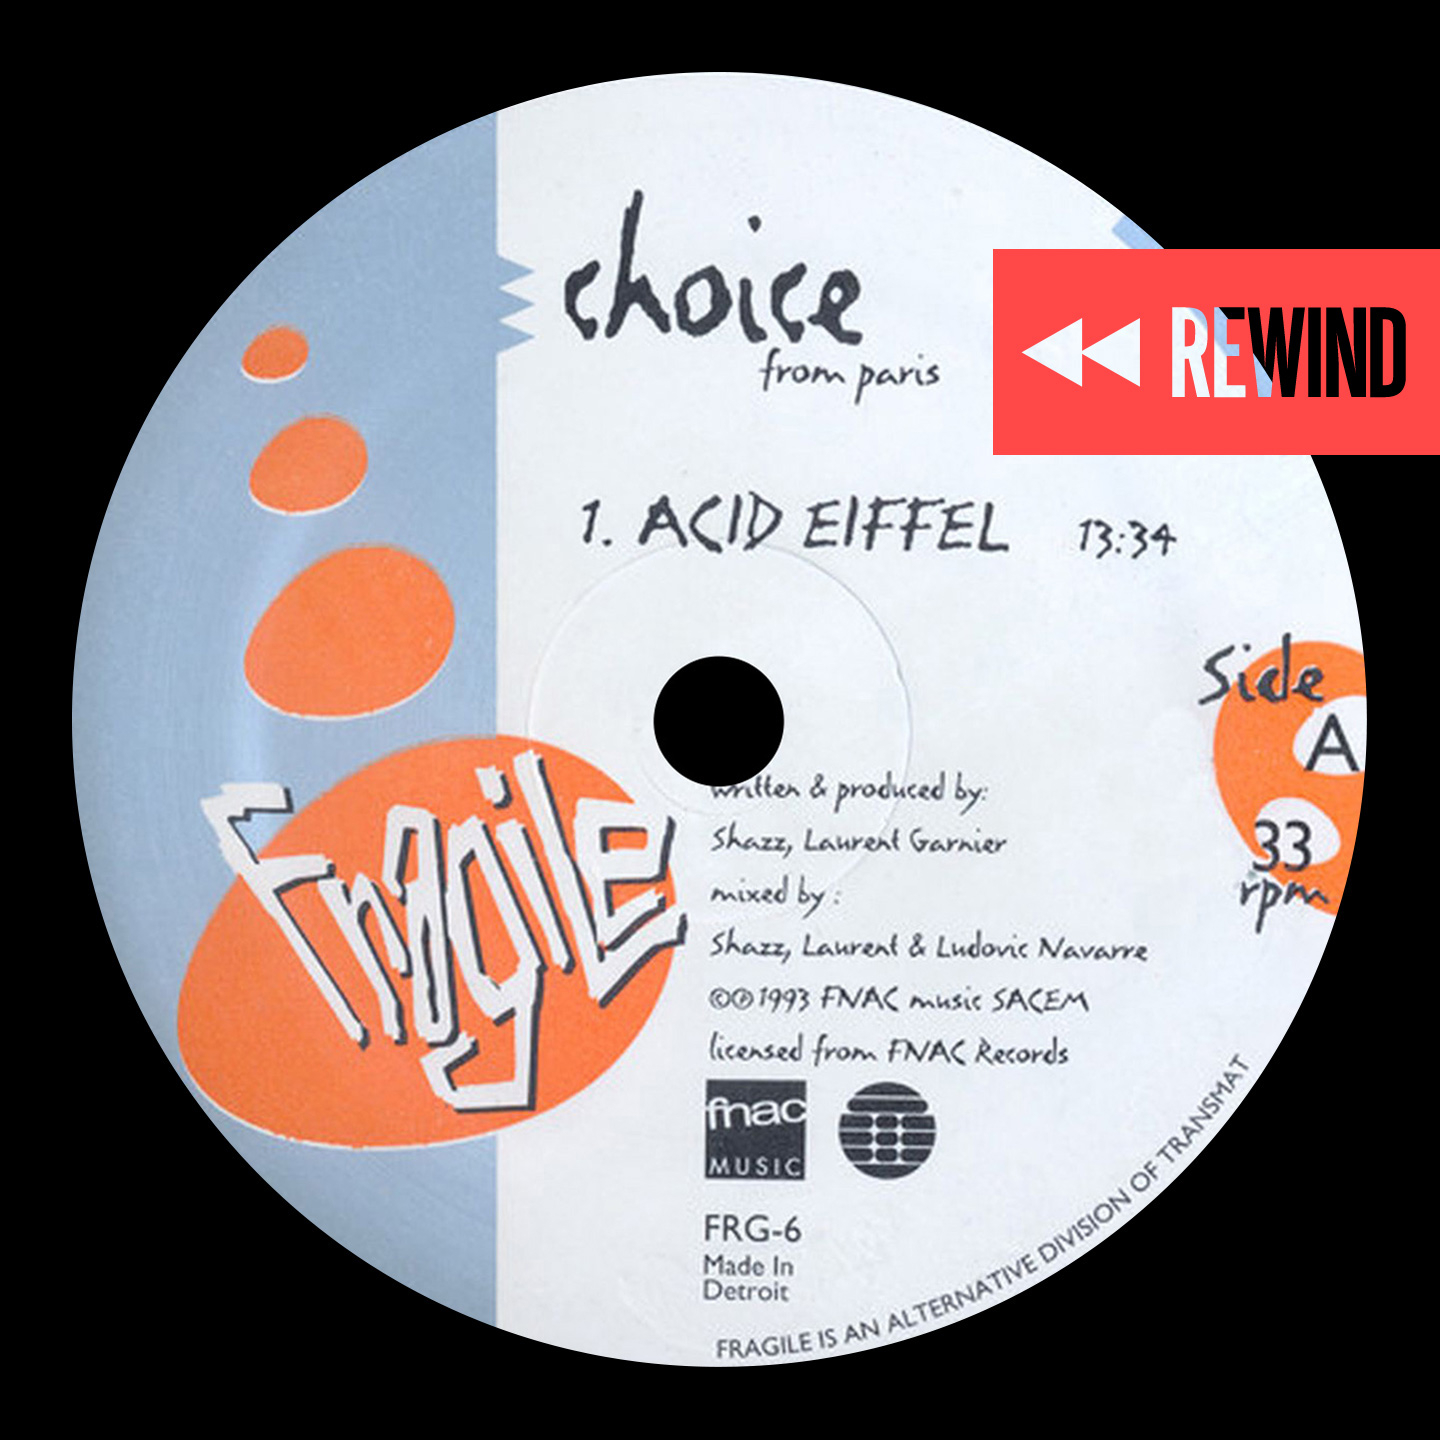 Rewind: Choice - Acid Eiffel